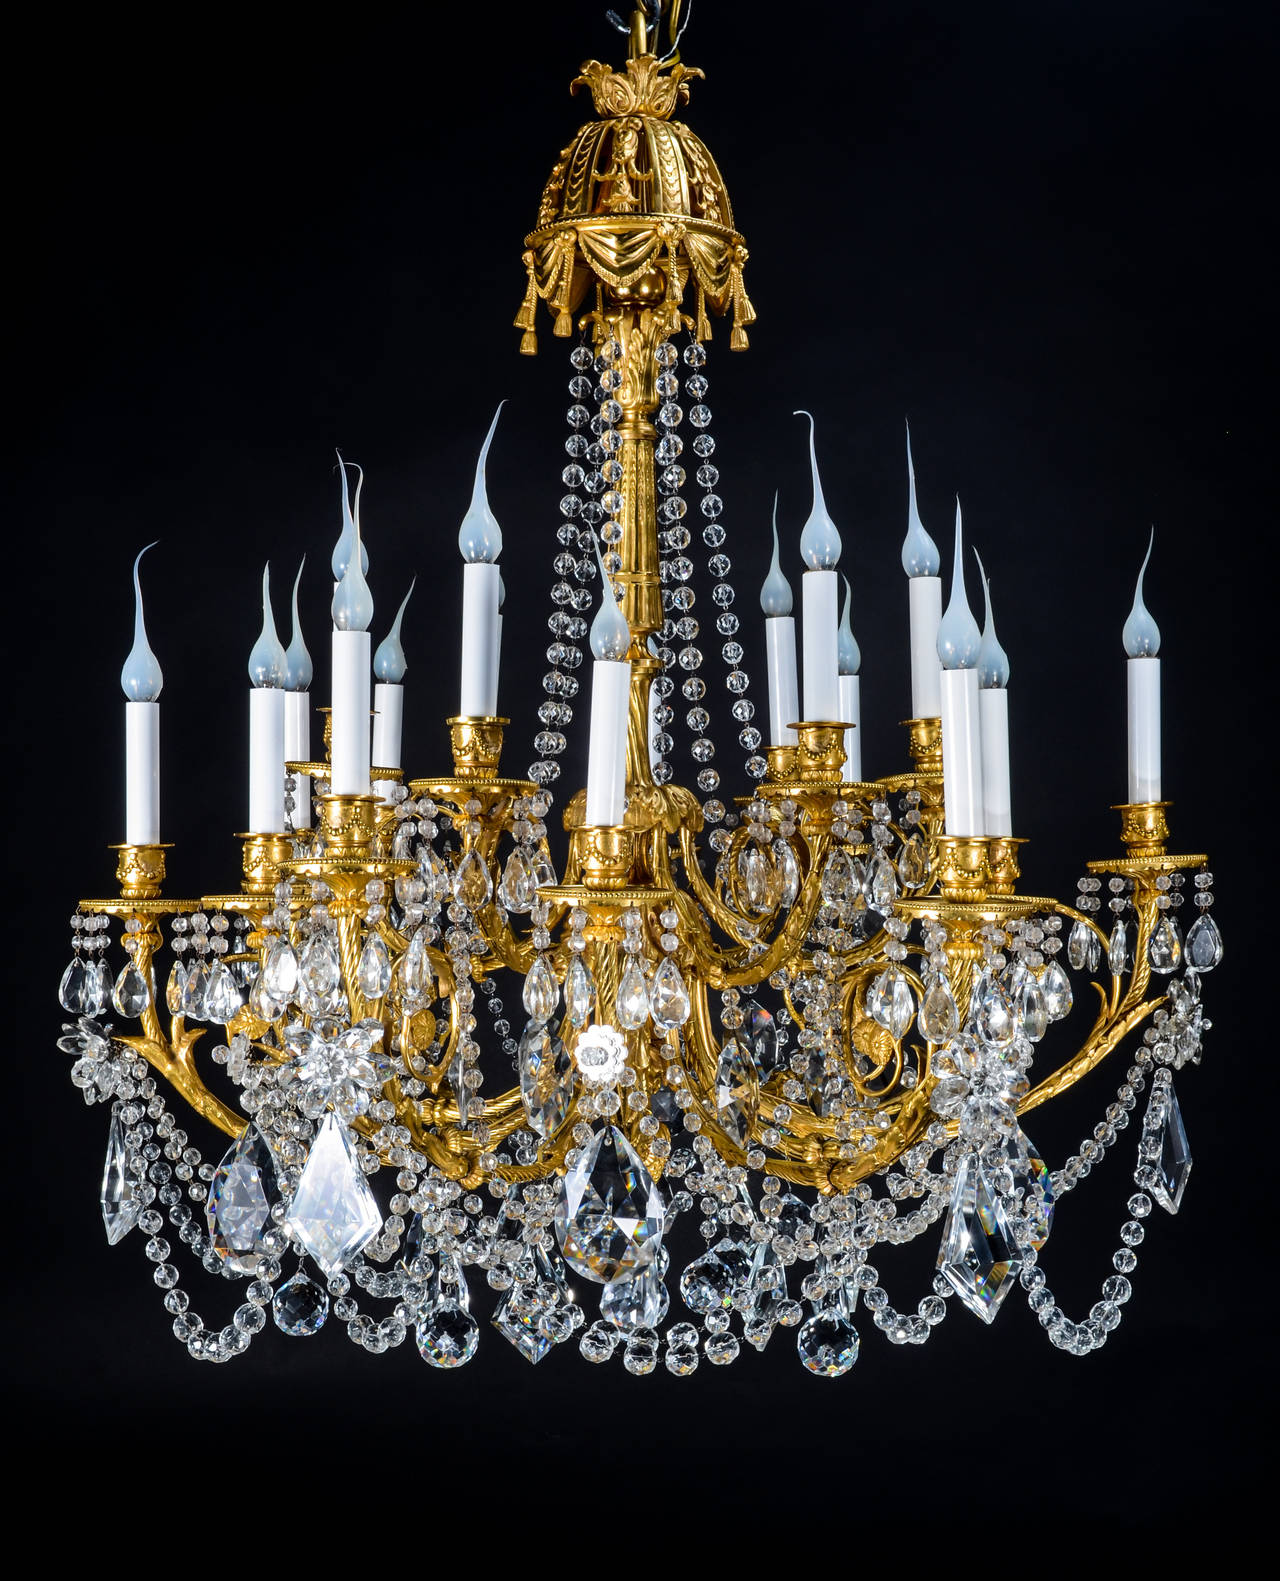 Superb antique french louis xvi style gilt bronze and crystal superb antique french louis xvi style gilt bronze and crystal chandelier 2 arubaitofo Image collections